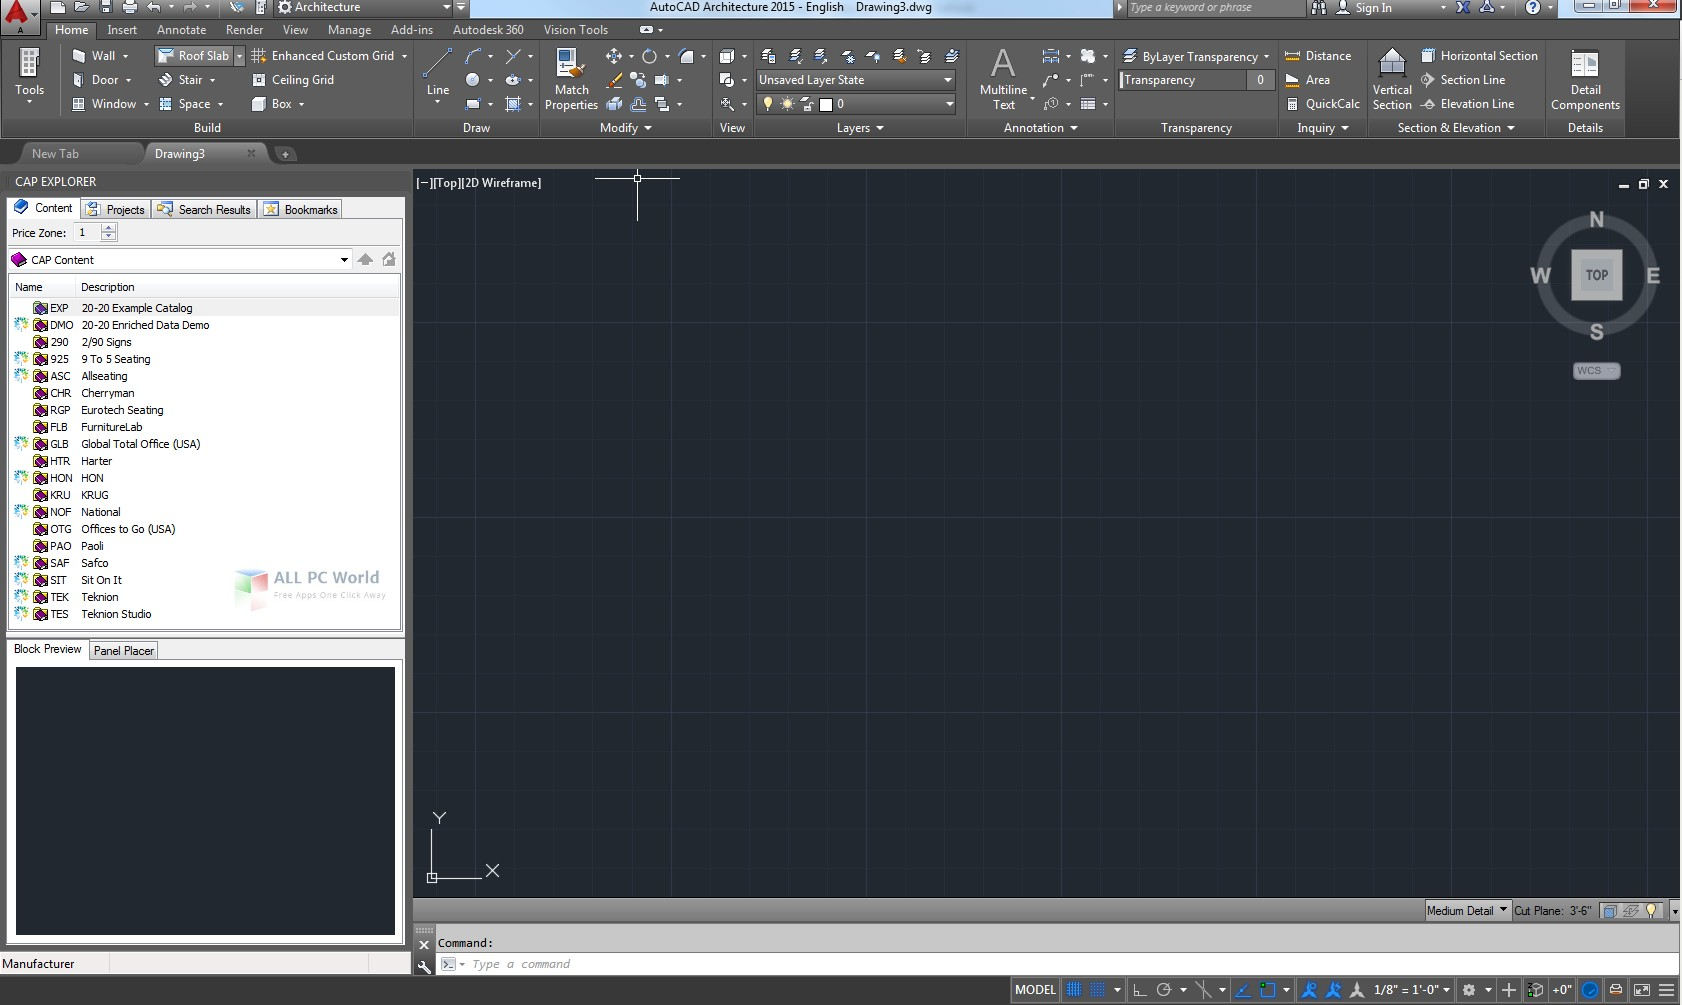 AutoCAD Design Suite Premium 2020 Free Download - ALL PC World